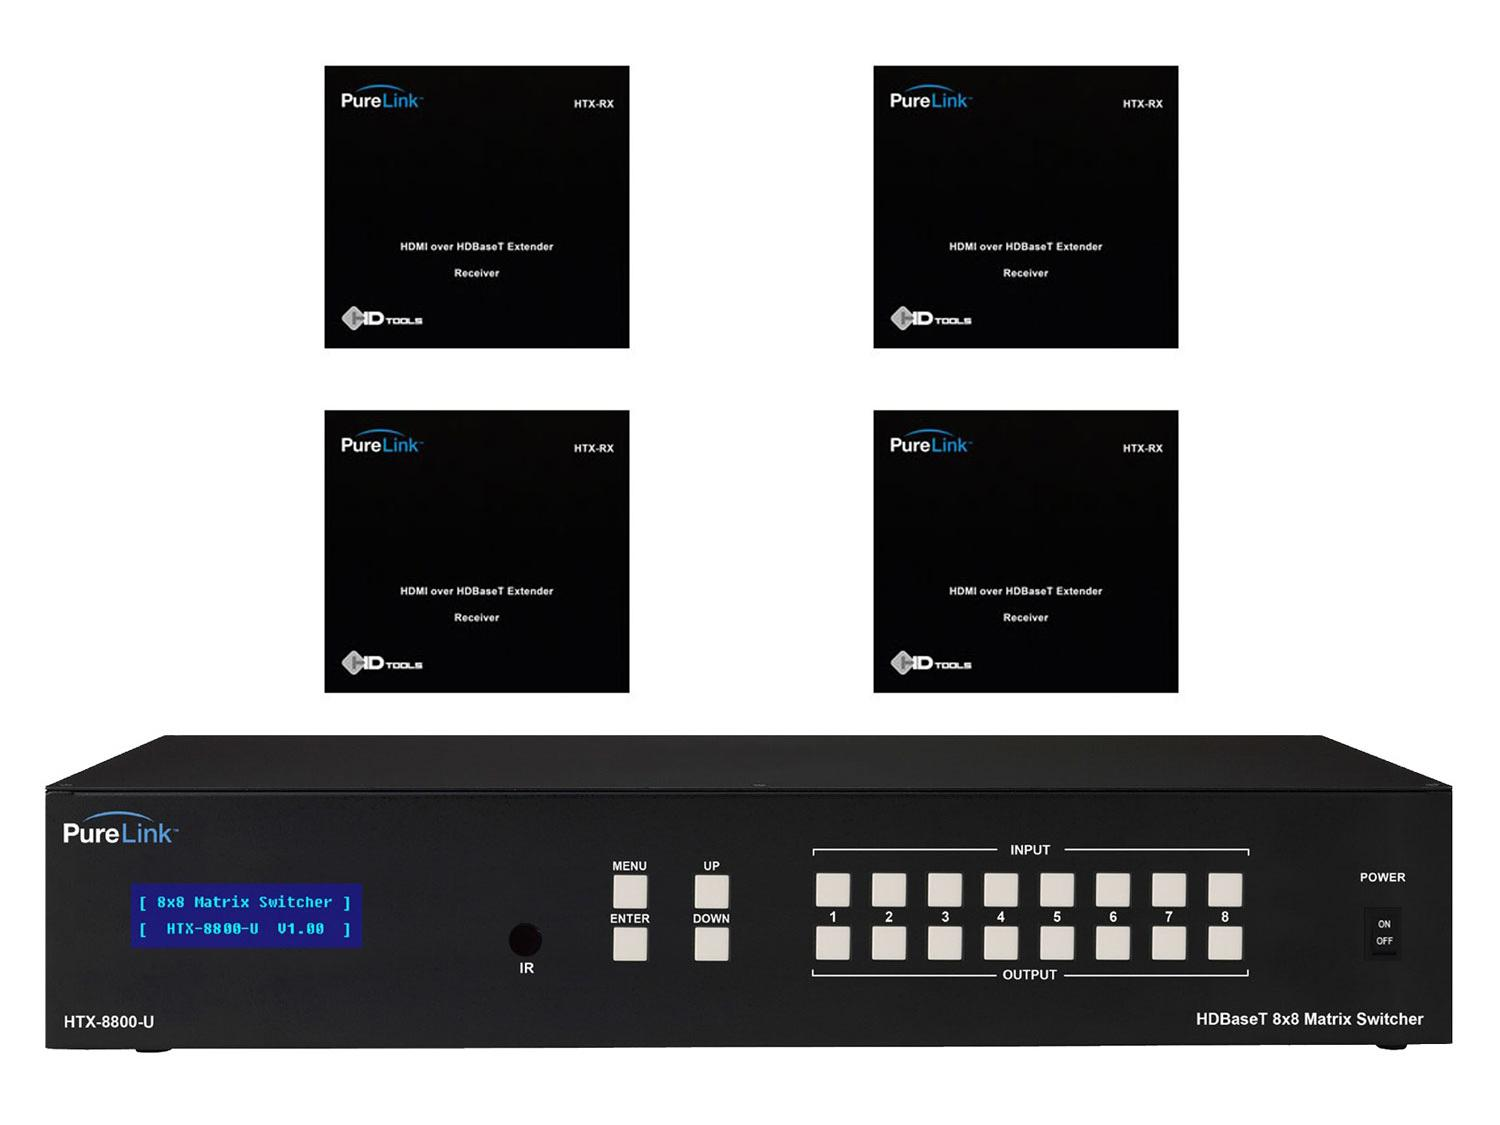 HTX-8800-U-KIT4 HTX-8800-U HDMI Switcher w (4) HTX Extender (Rx) Kit by PureLink